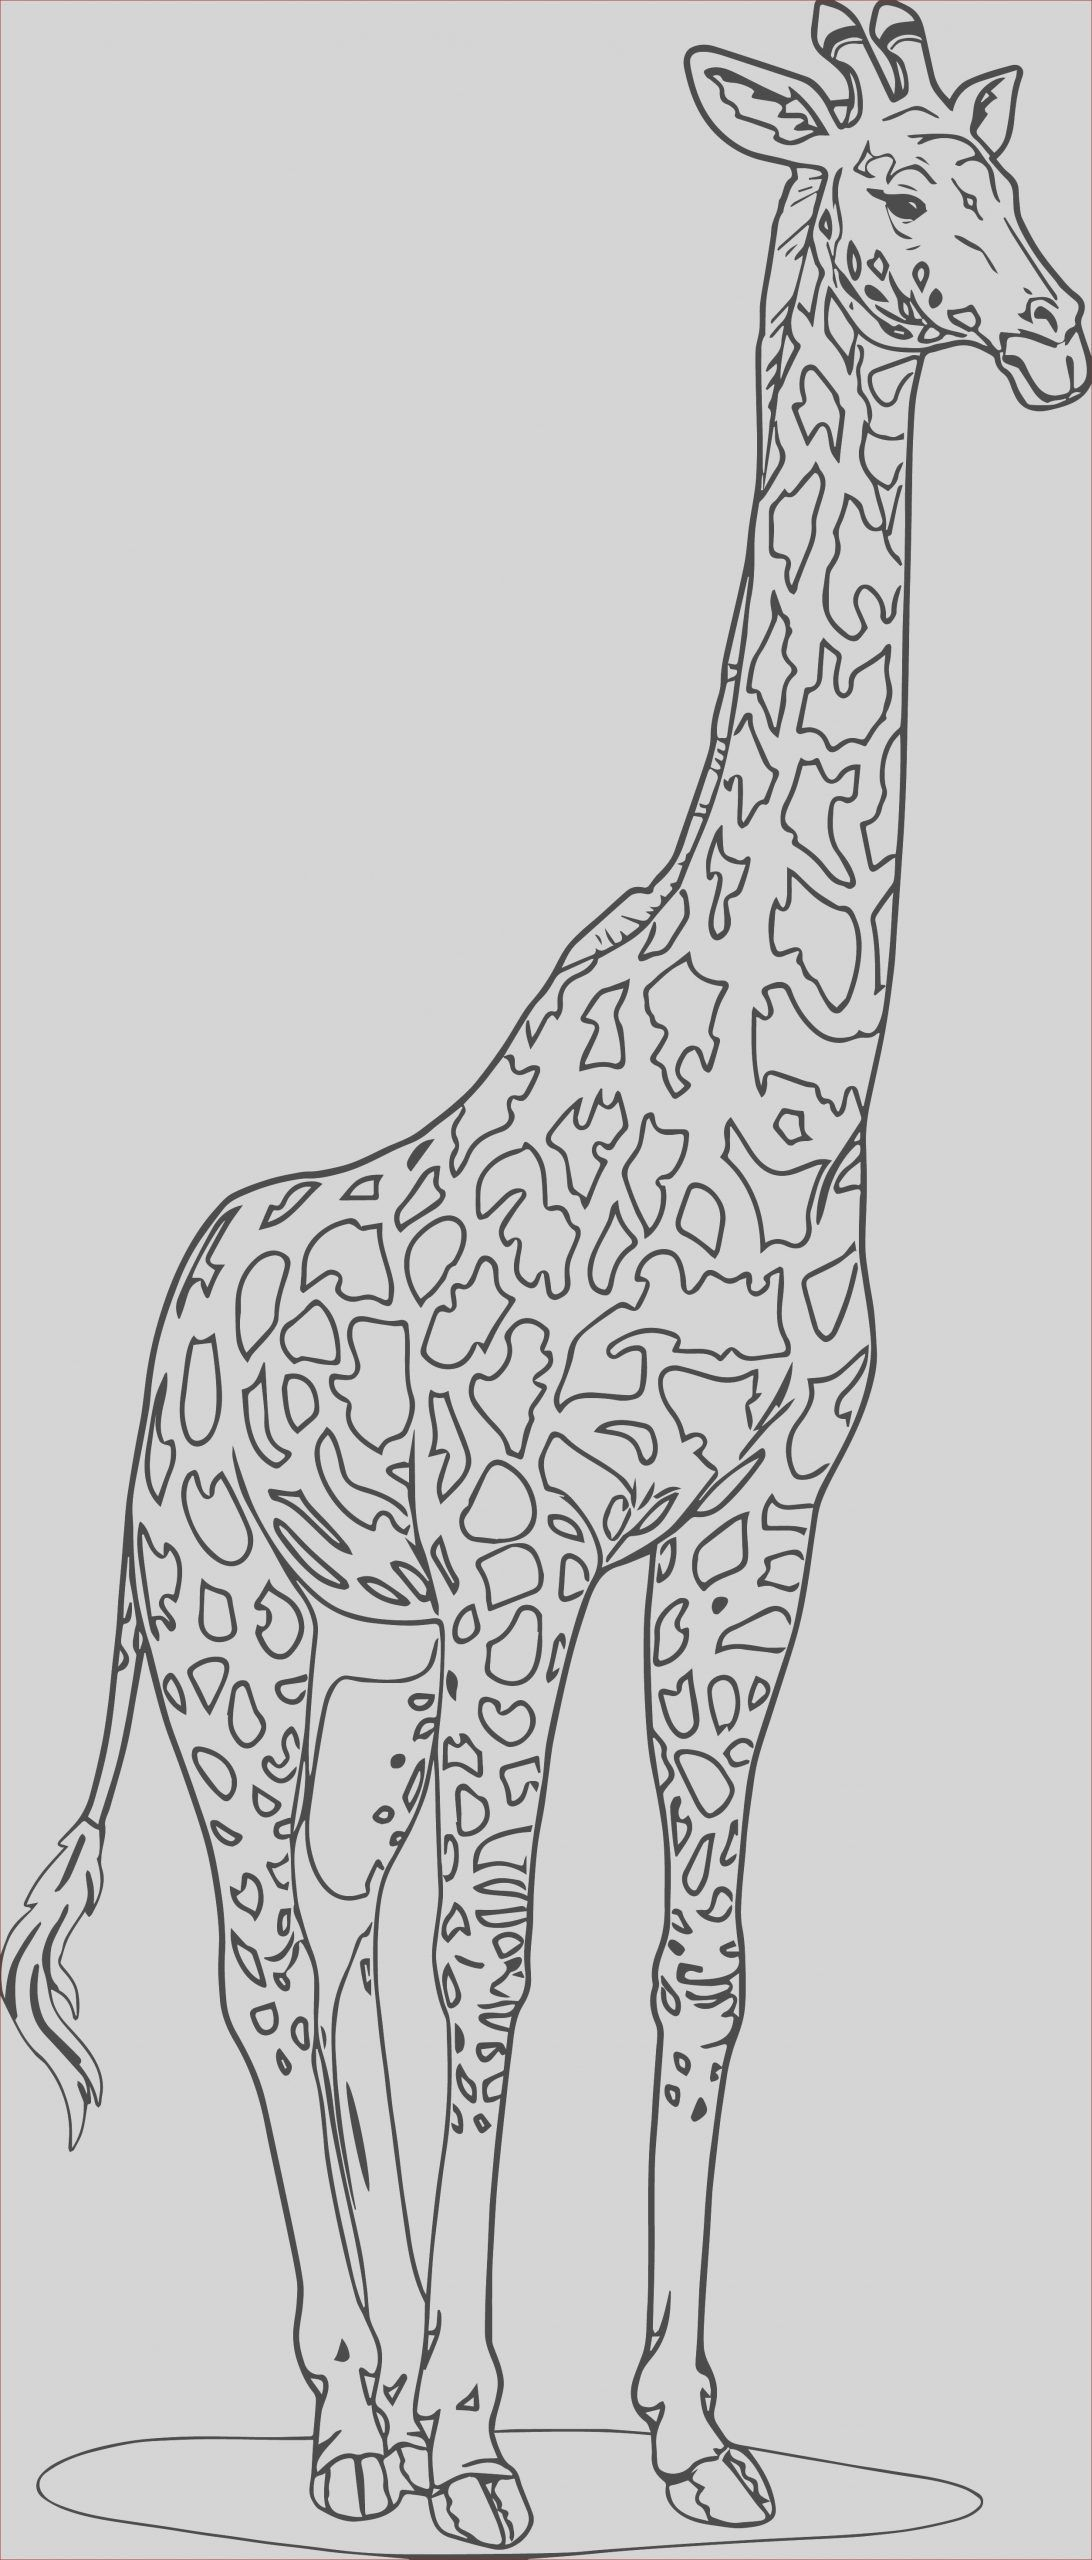 16 Unique Photos Of Girafe Coloring In 2020 Zoo Animal Coloring Pages Giraffe Coloring Pages Animal Coloring Pages